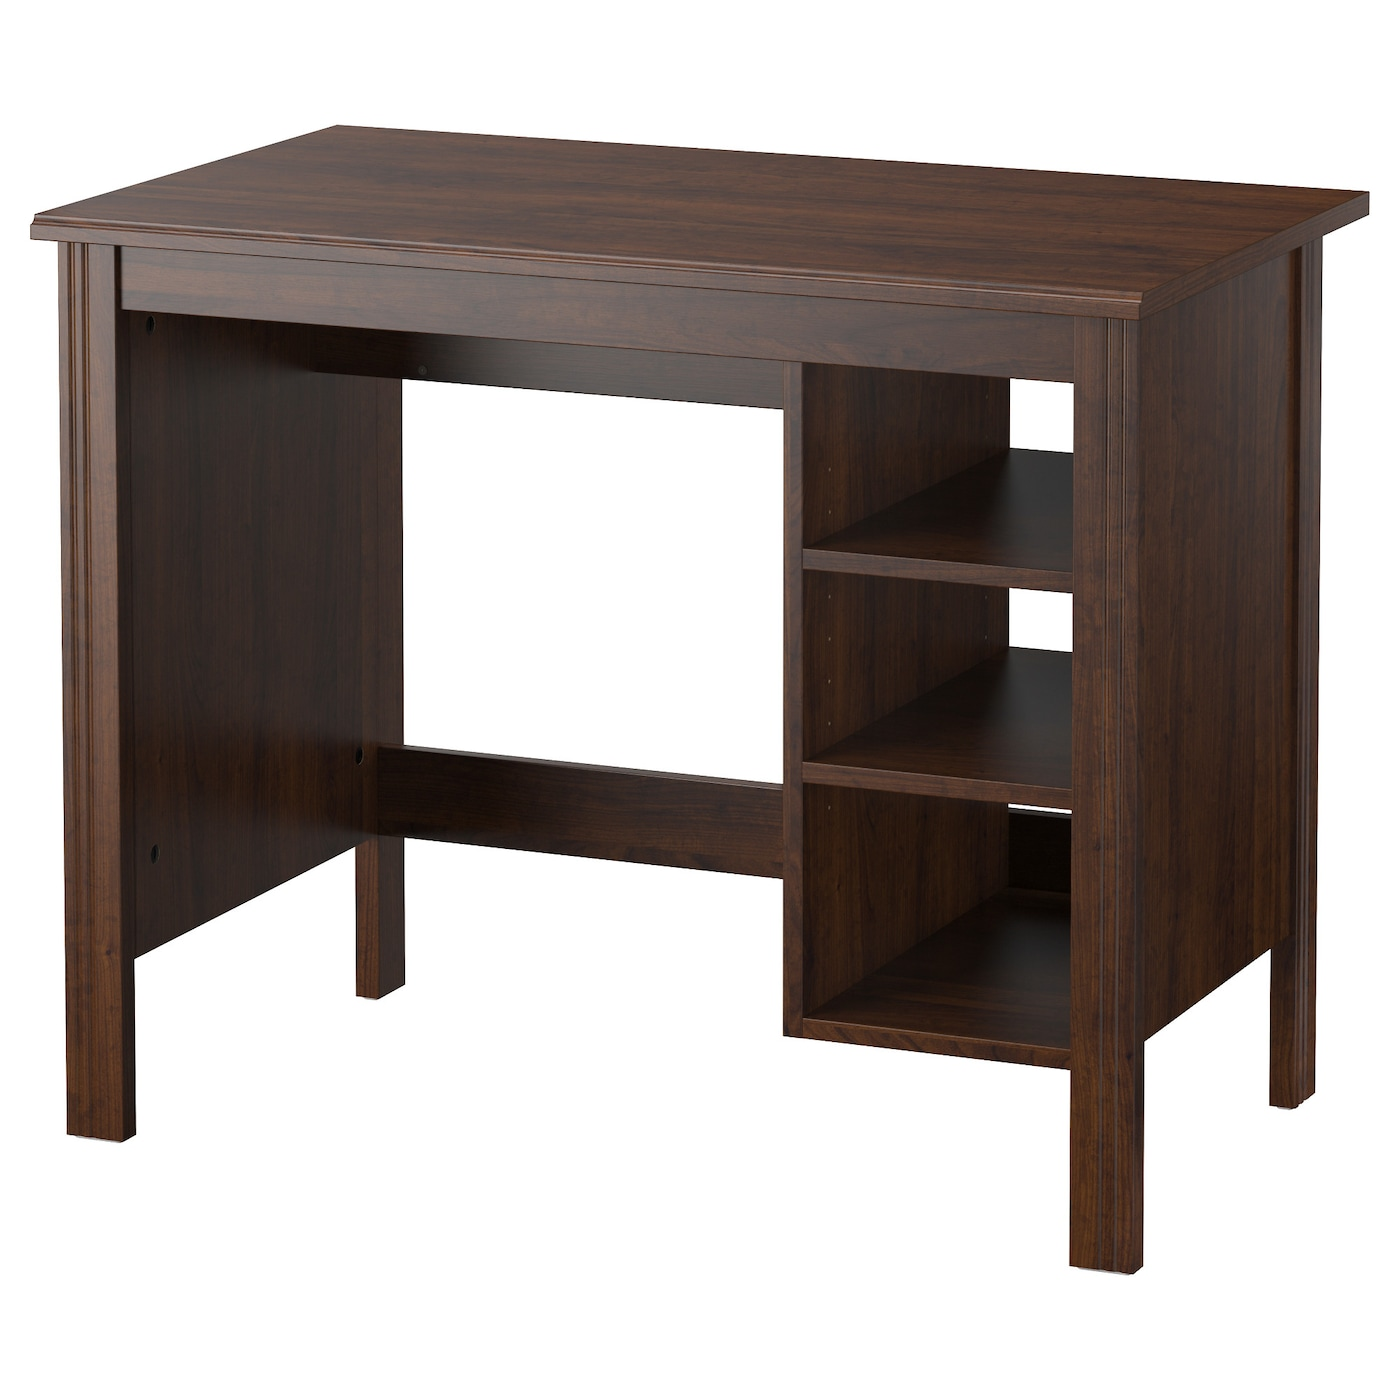 Brusali desk brown 90x52 cm ikea for Ikea drawing desk